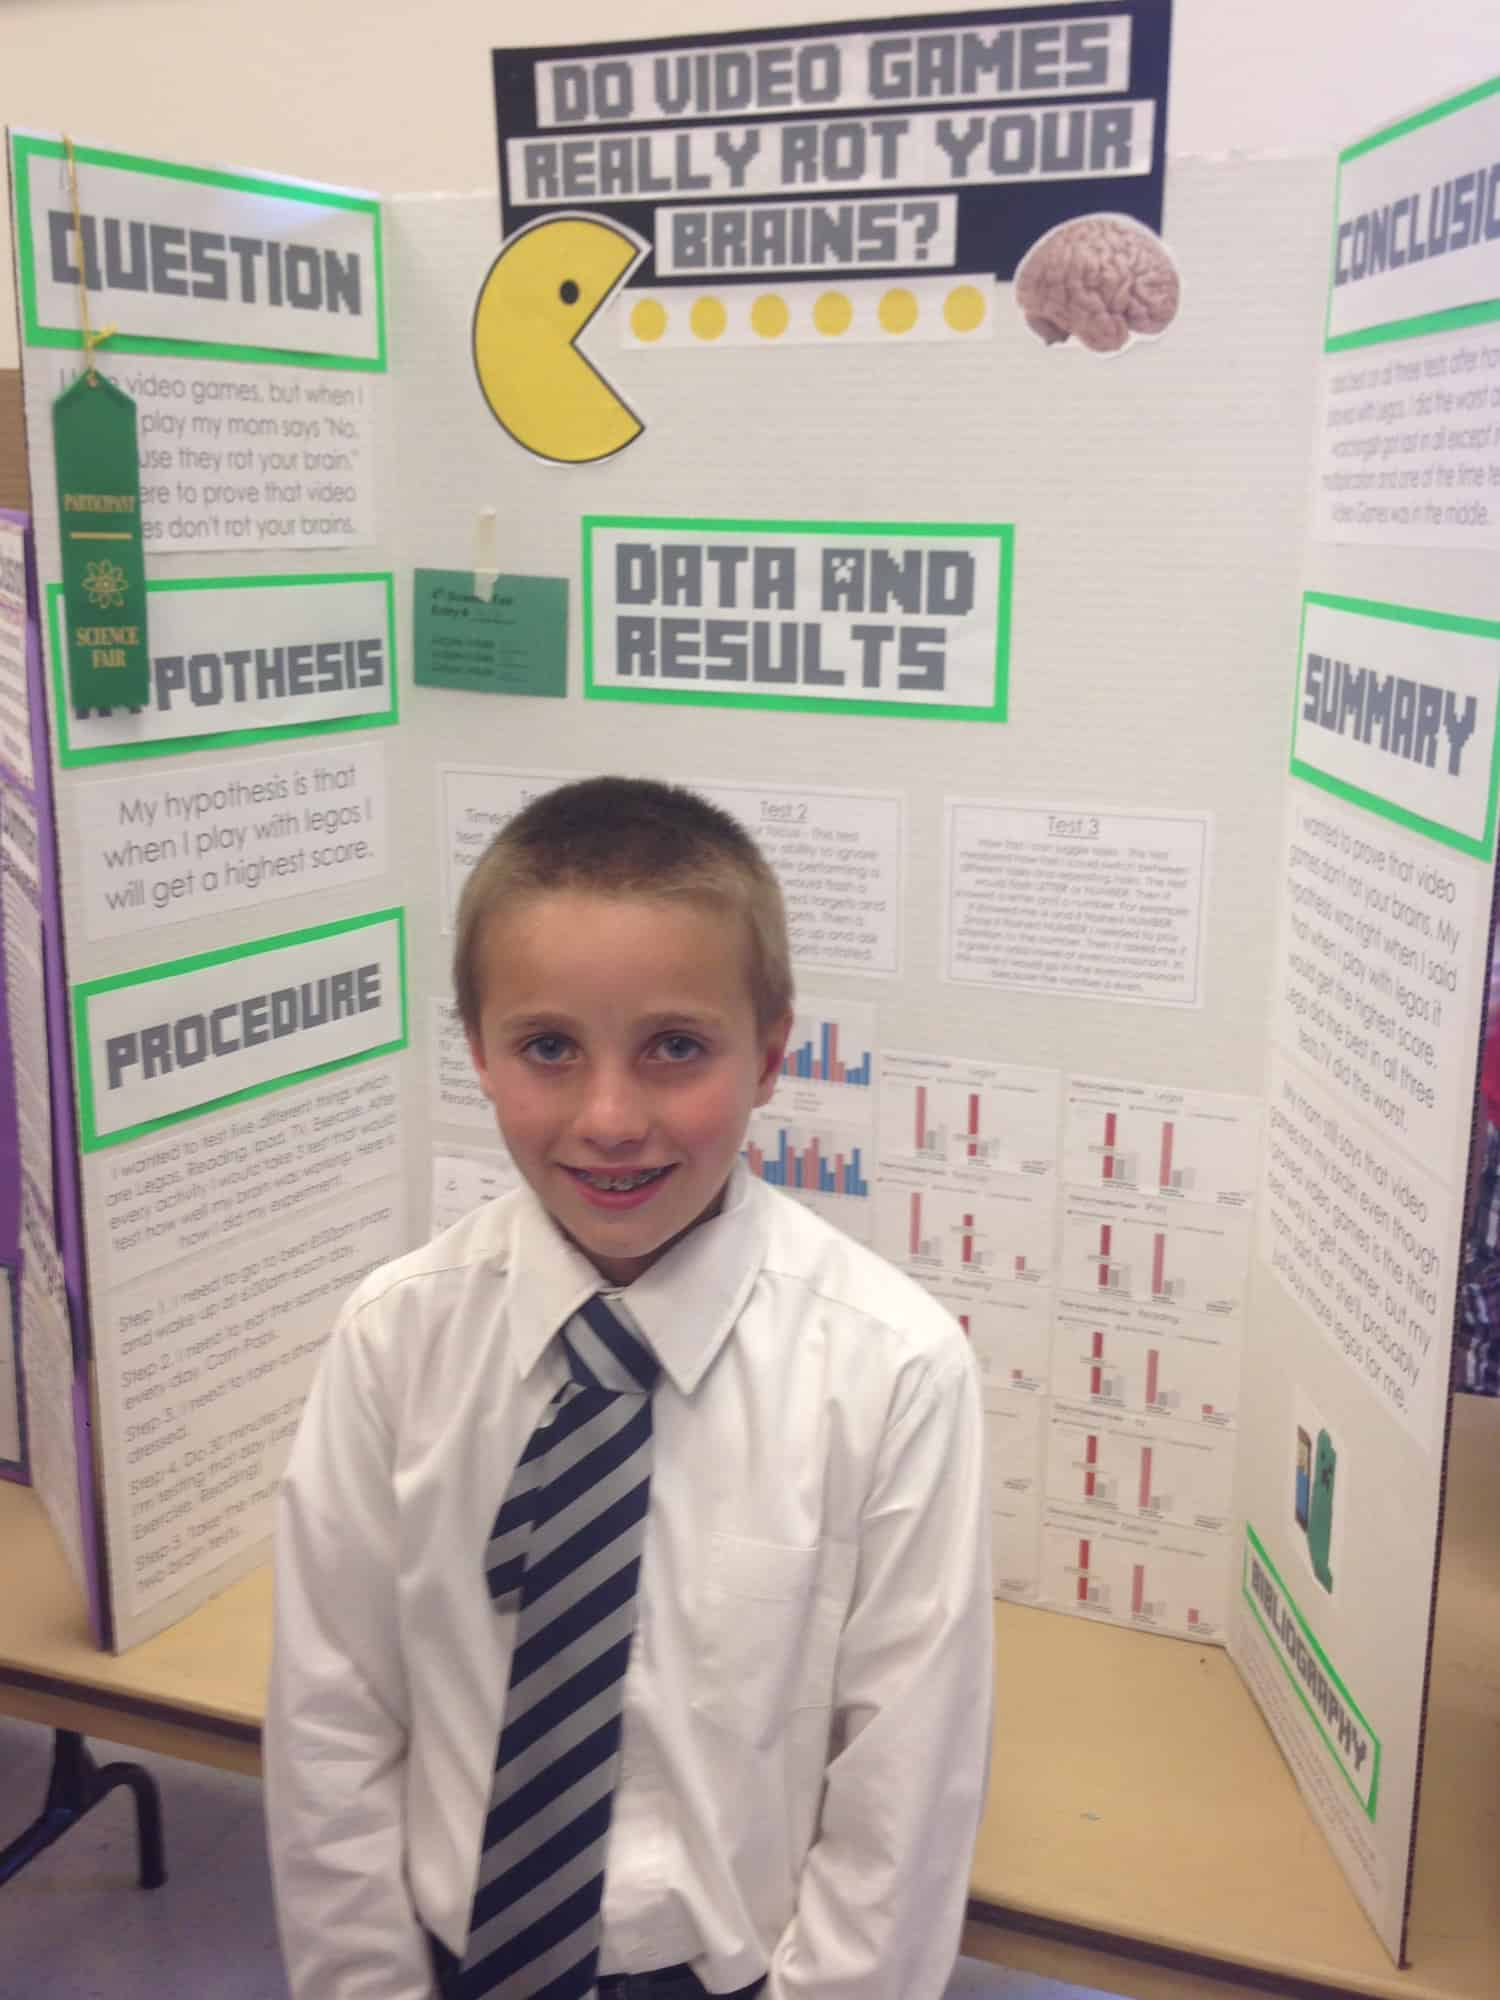 science fair projects project winning games rot board rock funny brain experiments really boards activities game overthebigmoon awesome kid cool